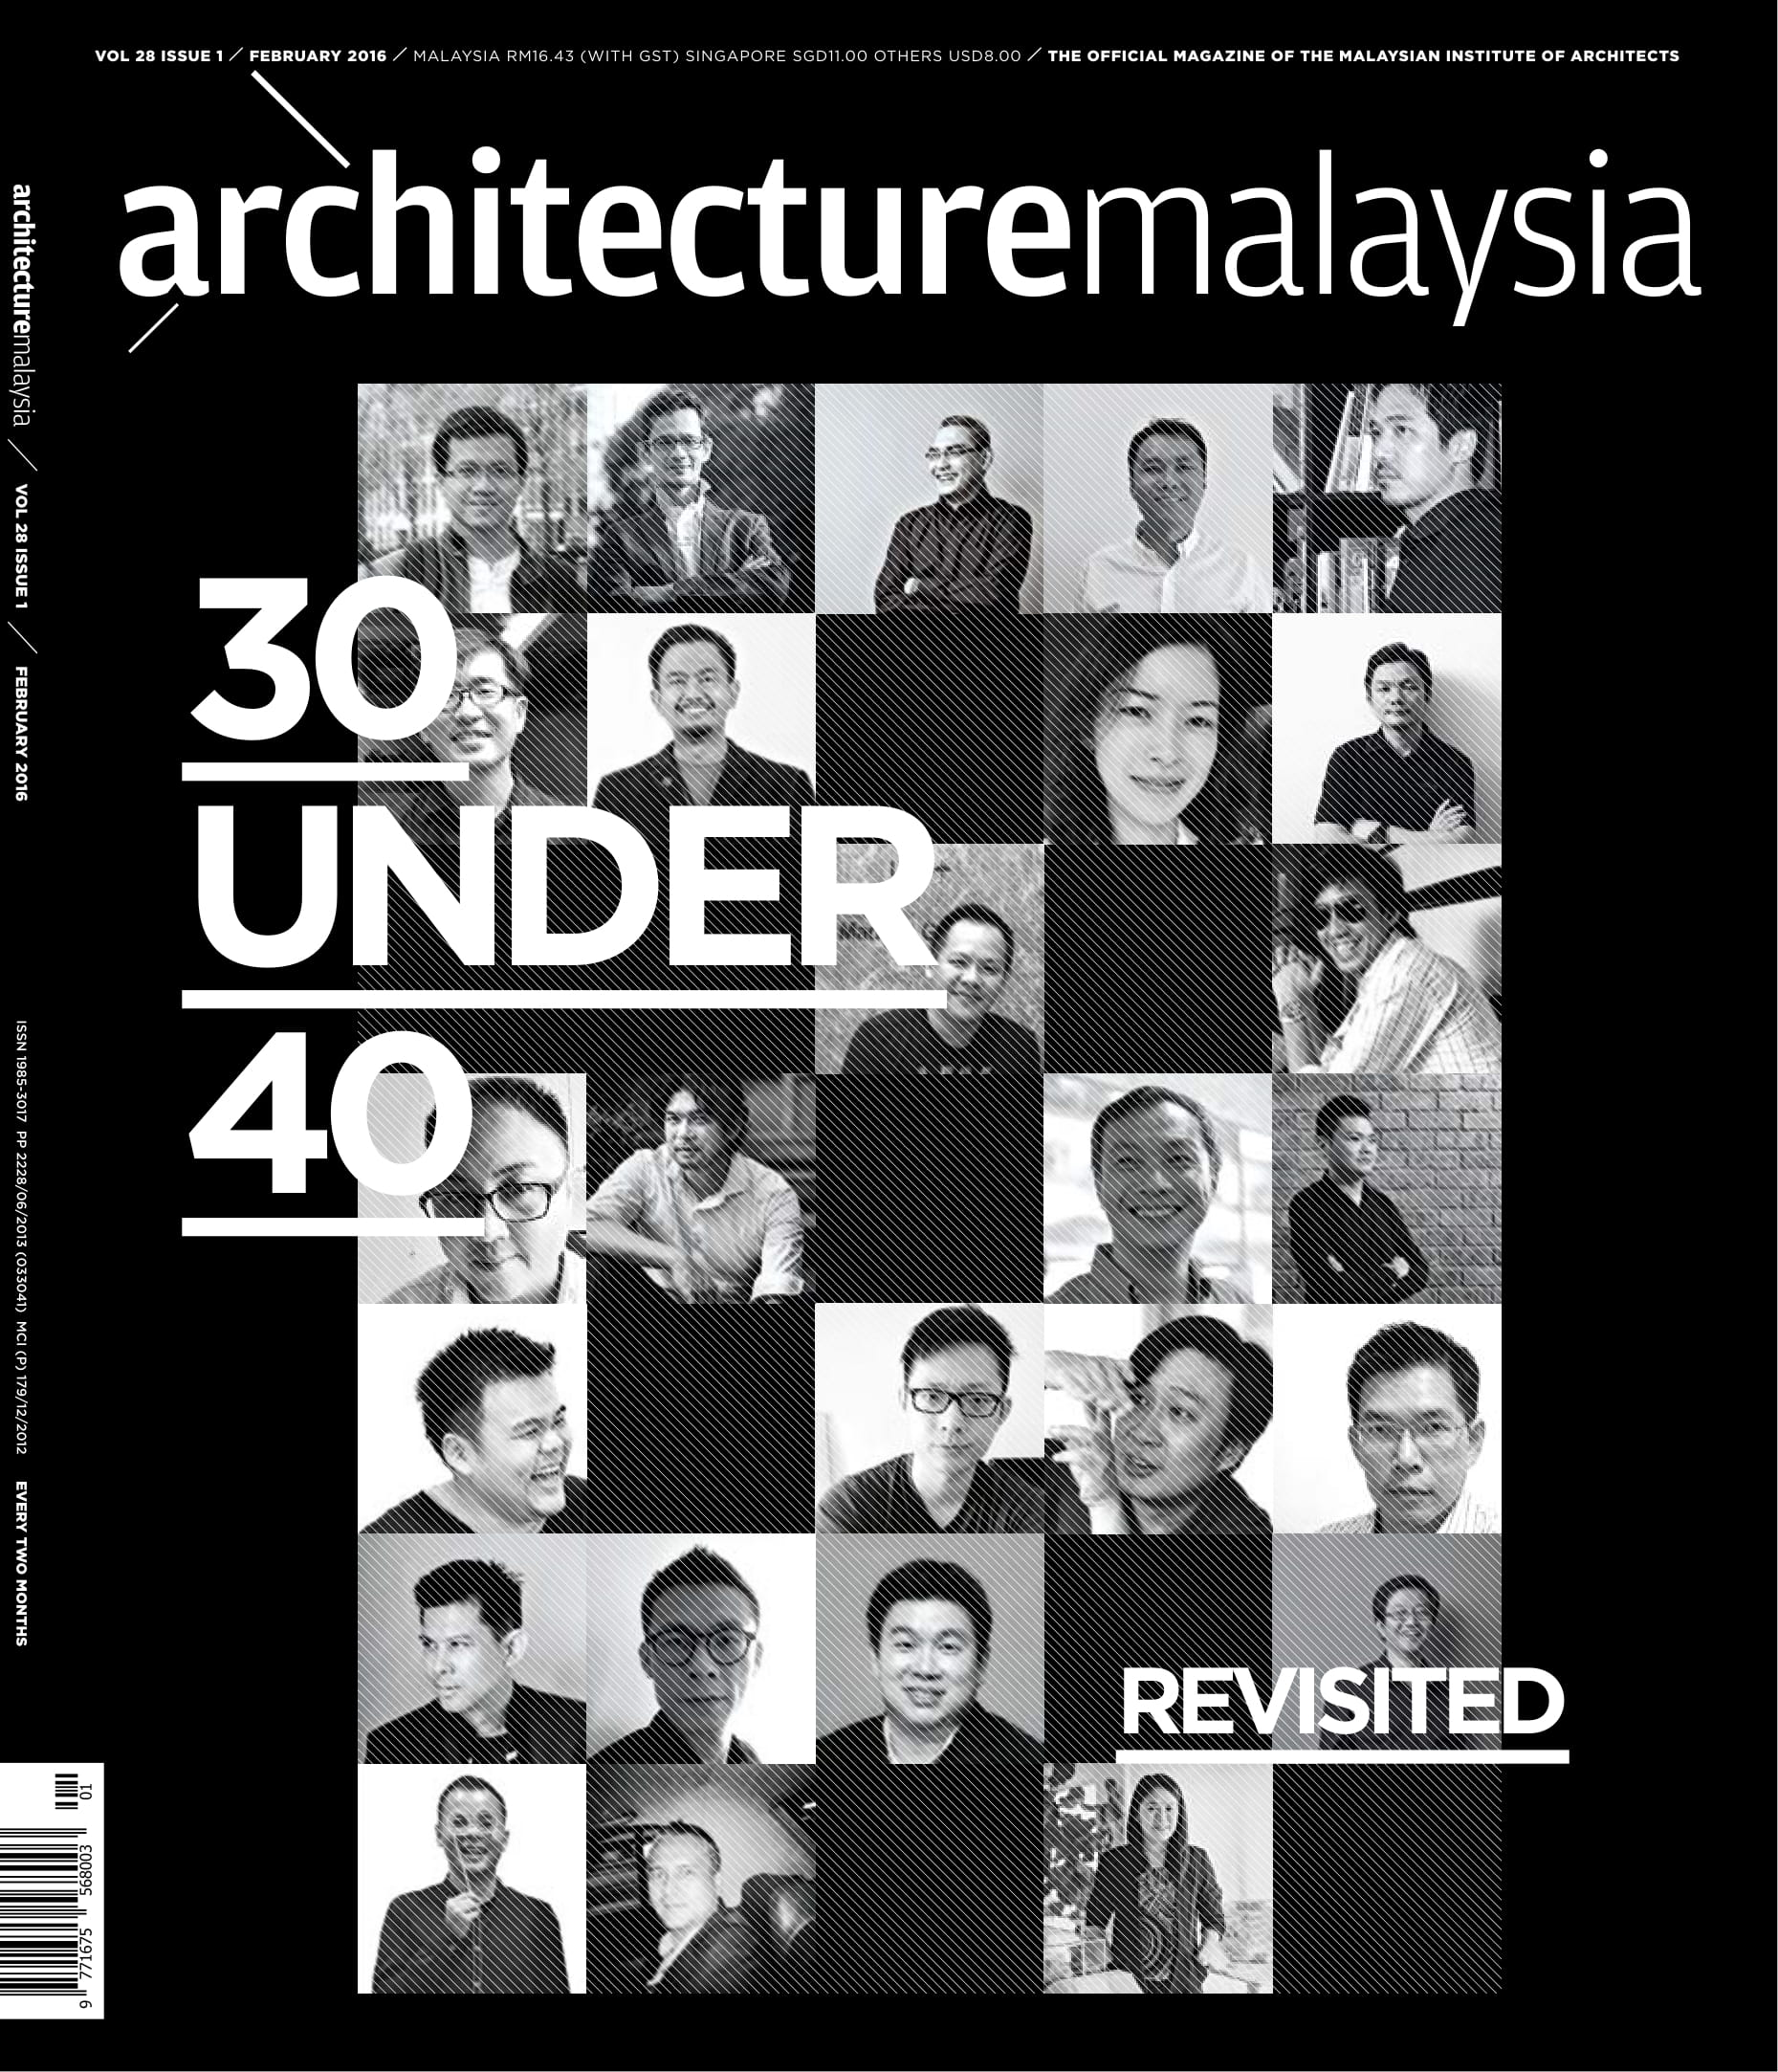 AM Issue 28.1